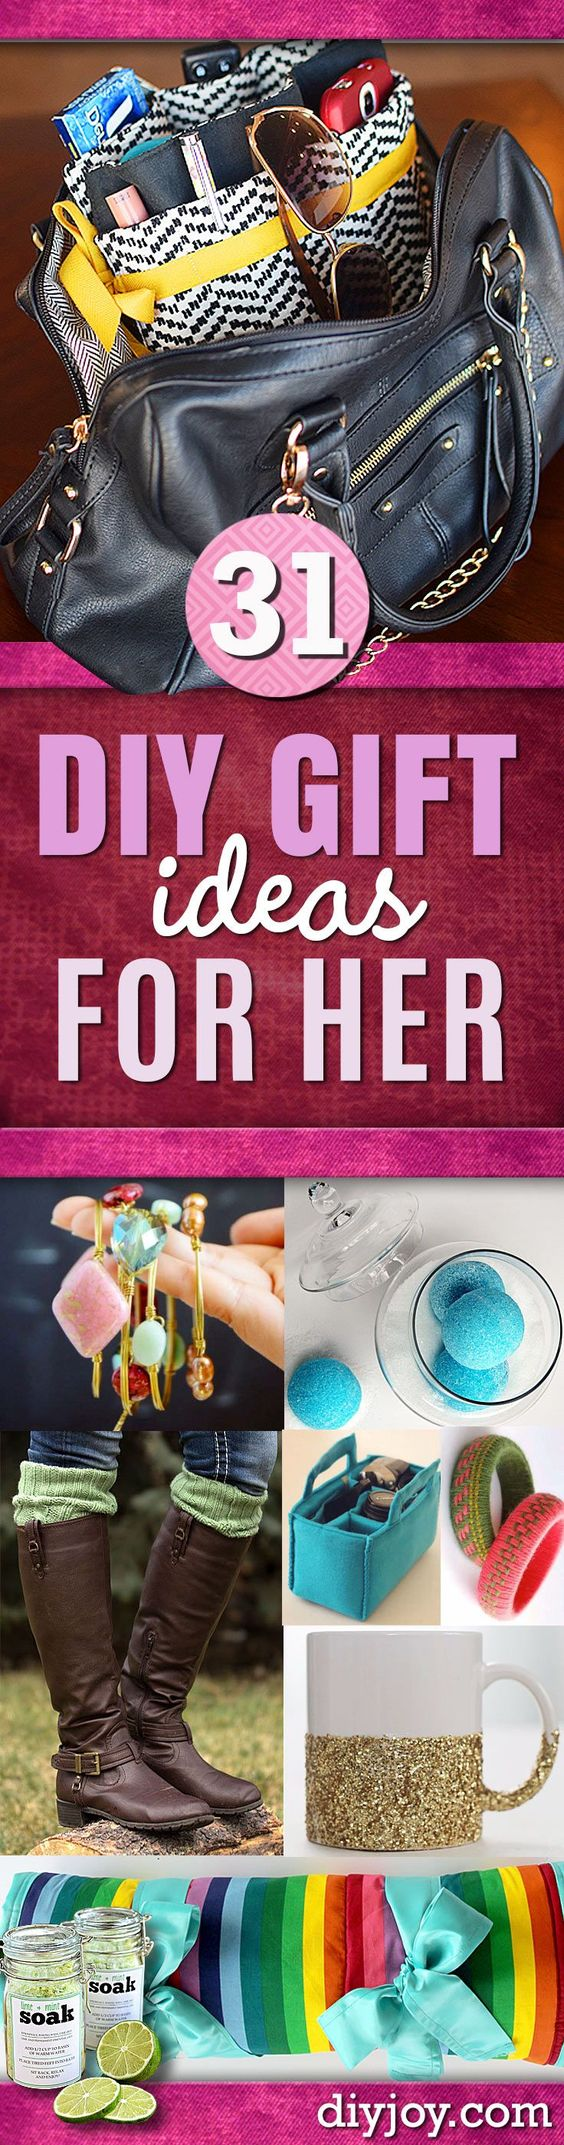 Super Special Diy Gift Ideas For Her Ideas For